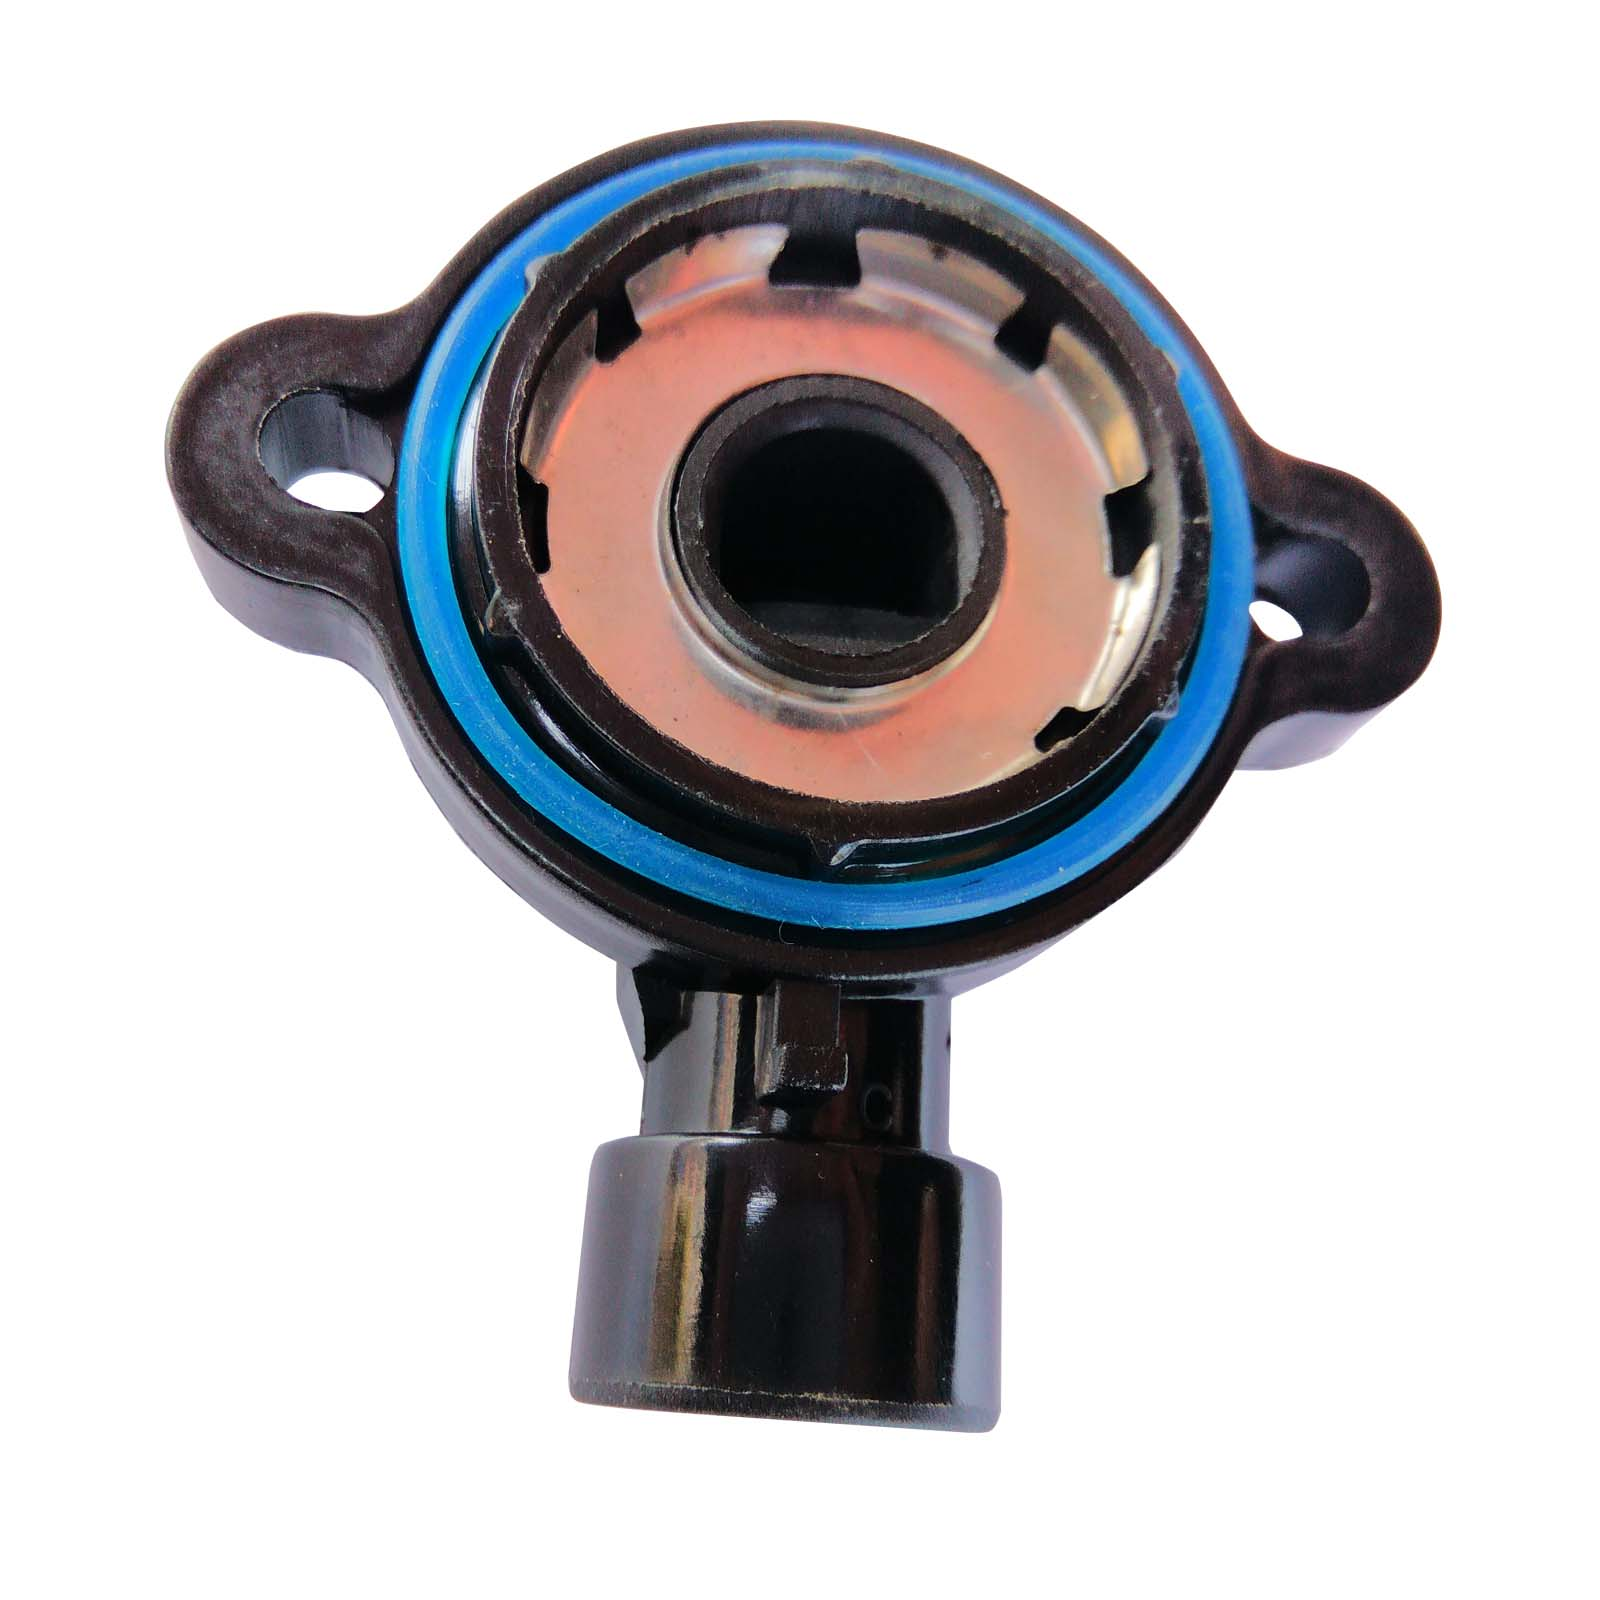 Throttle Position Sensor Toyota Hilux: Commodore Holden Throttle Position Sensor 5.7L V8 LS1 GEN